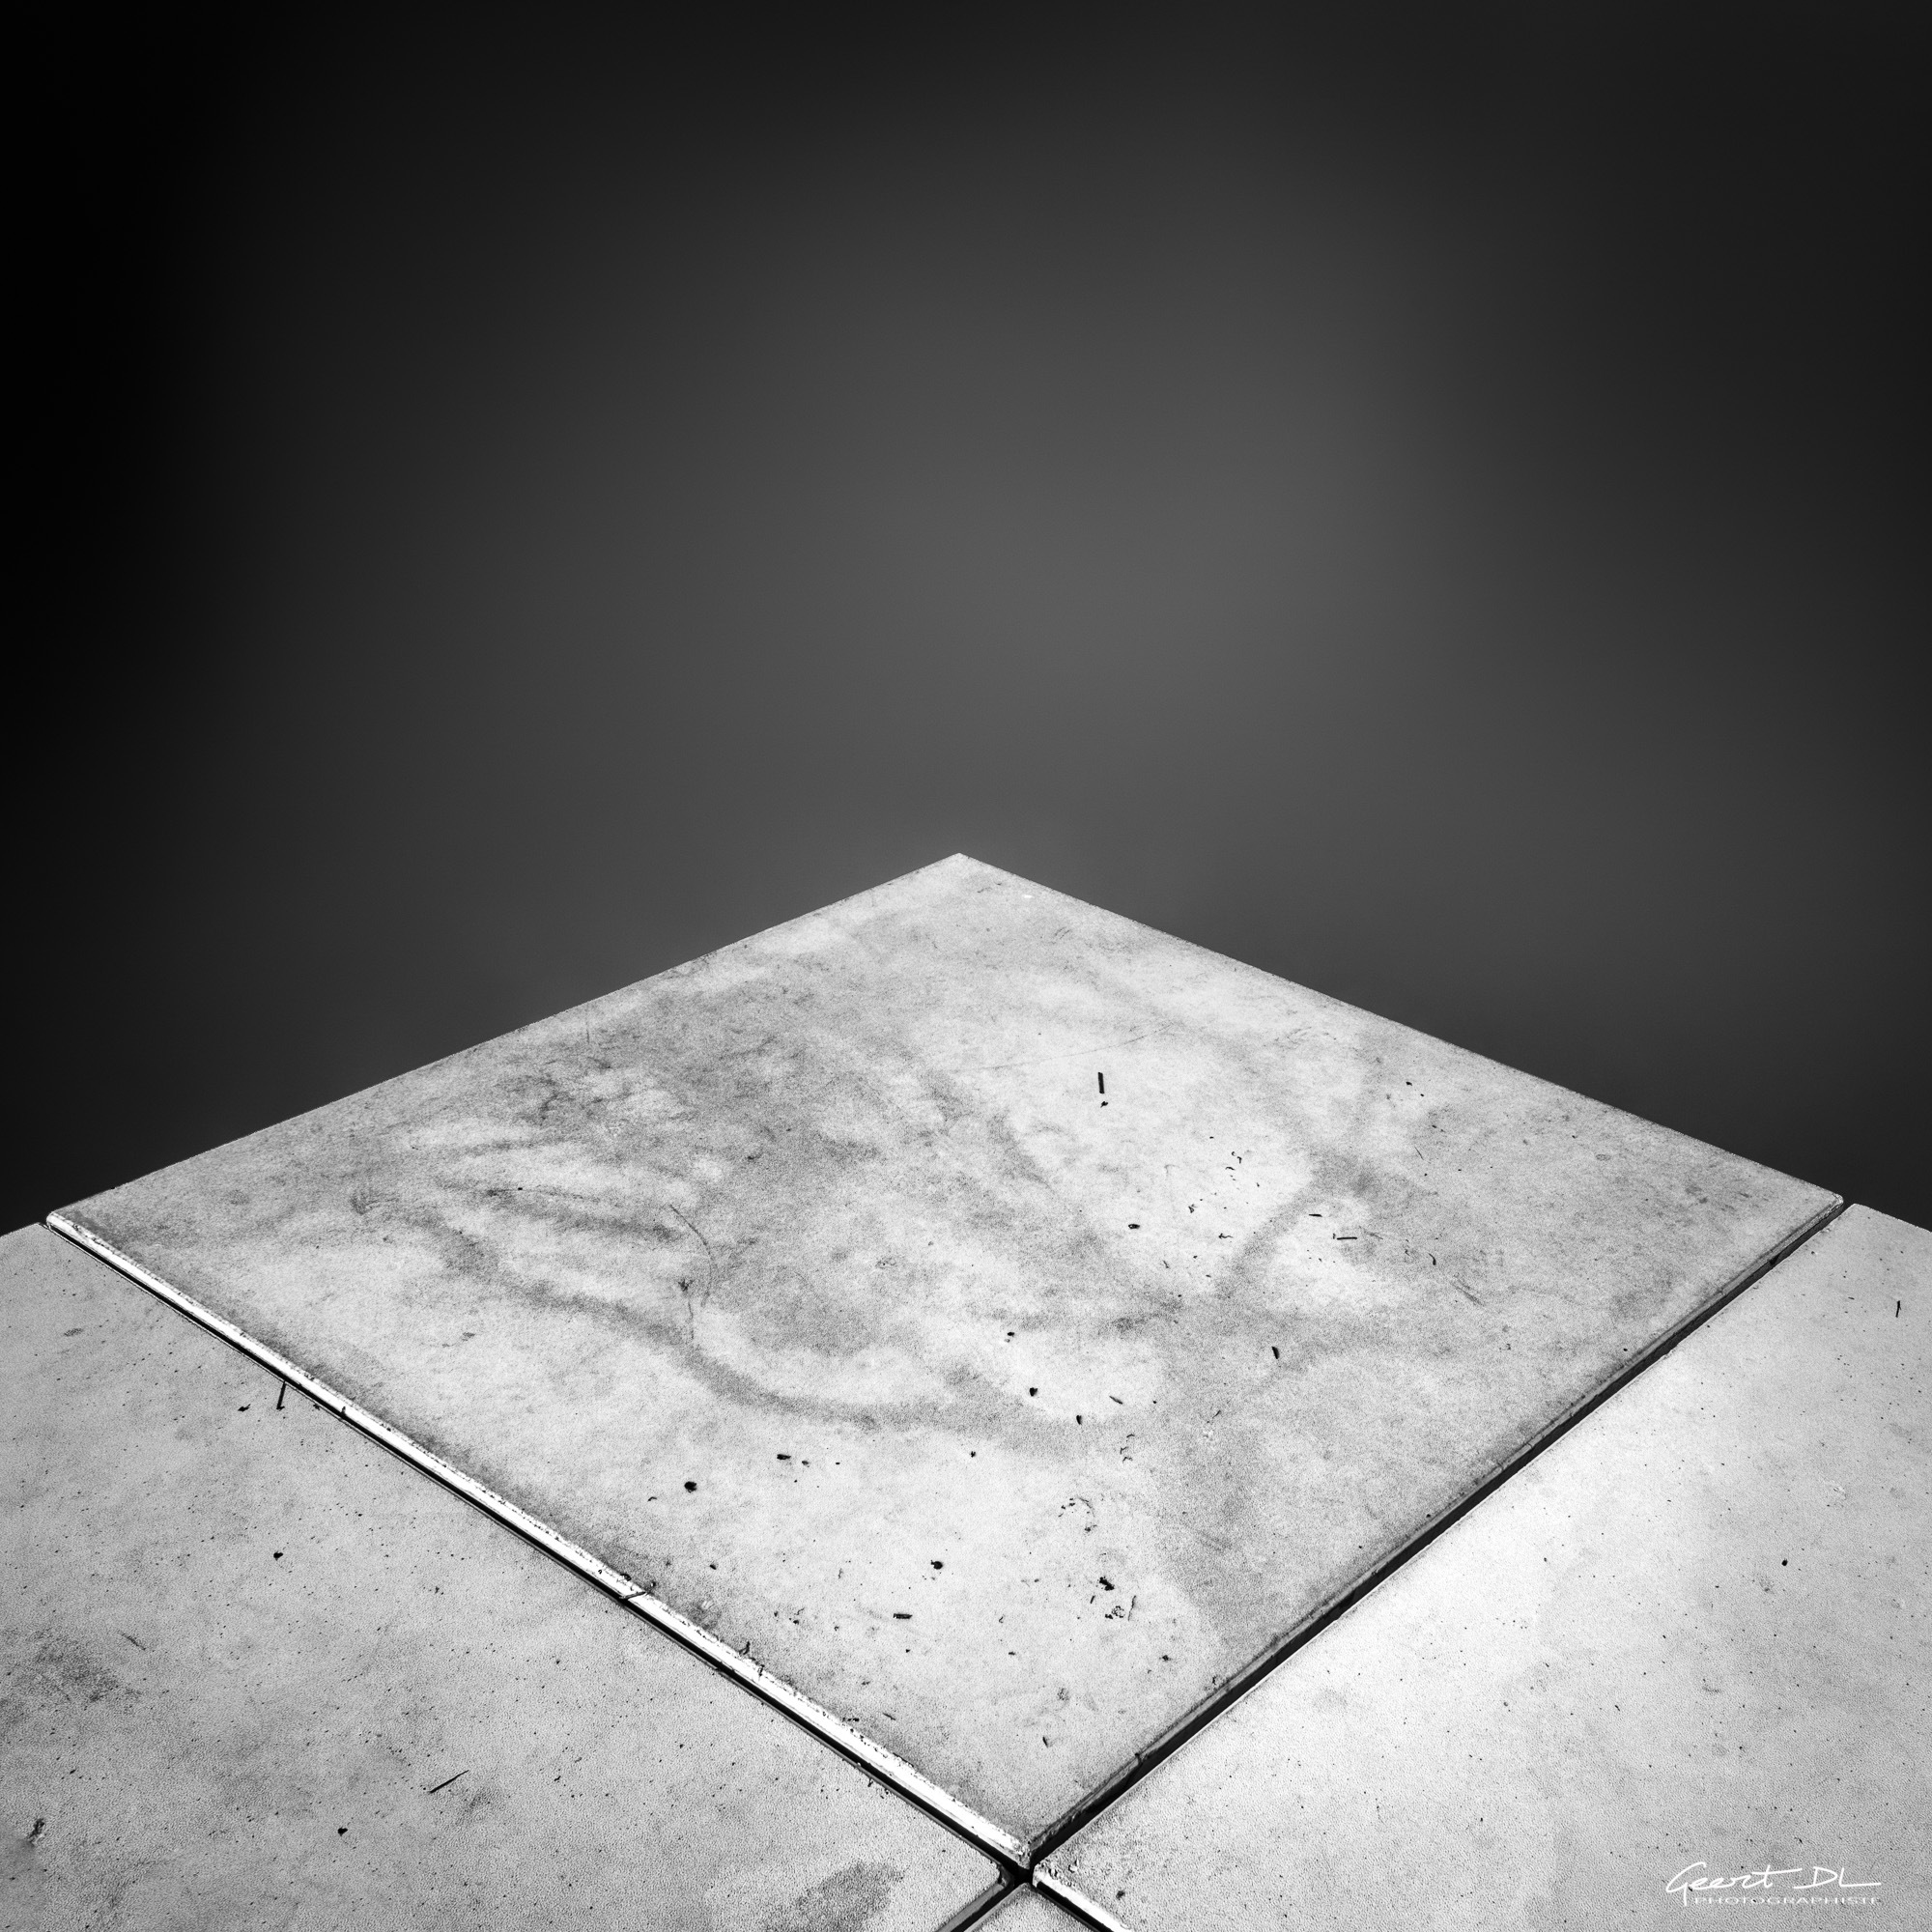 square in square by GeertDoutreligne